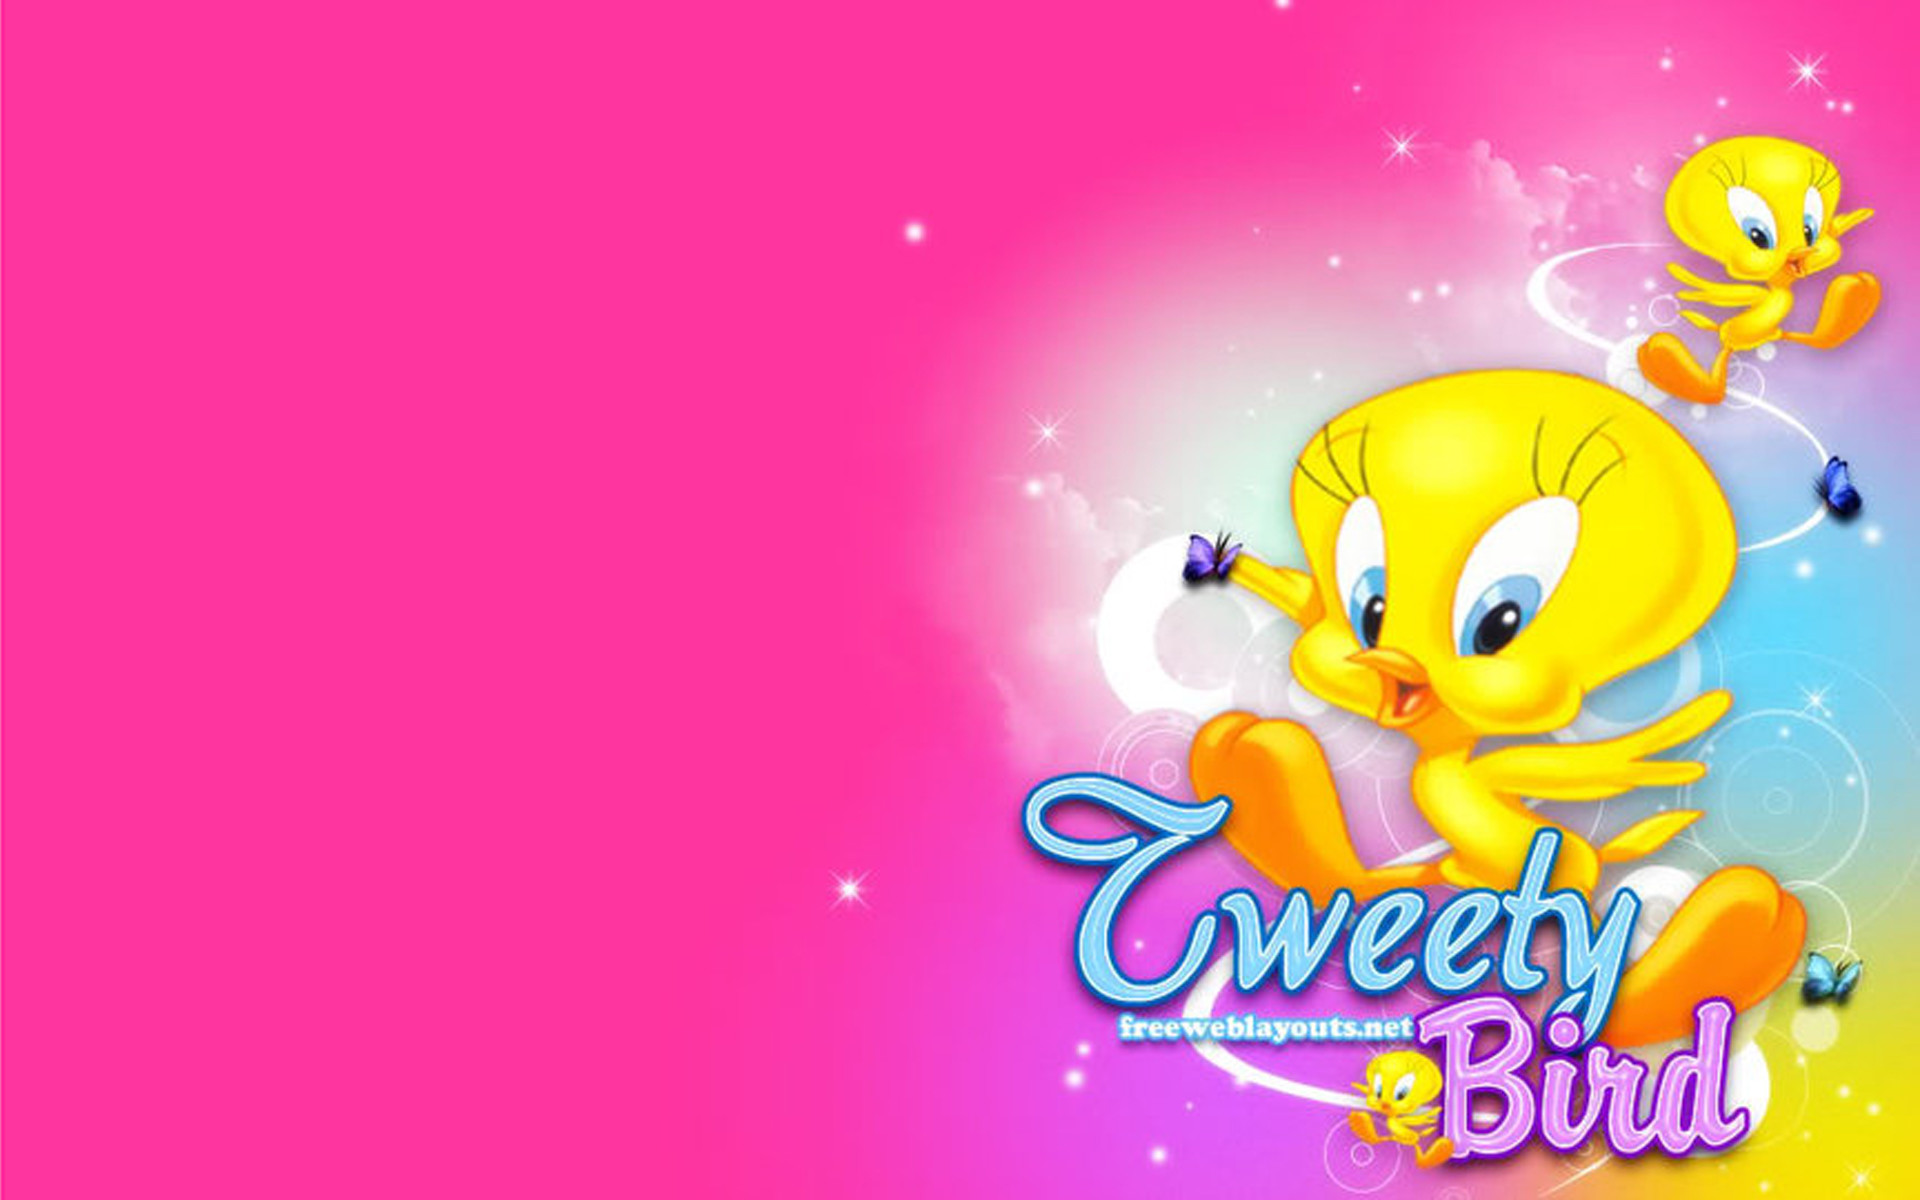 Horror Animated Wallpapers For Pc Tweety Bird Backgrounds 183 ①